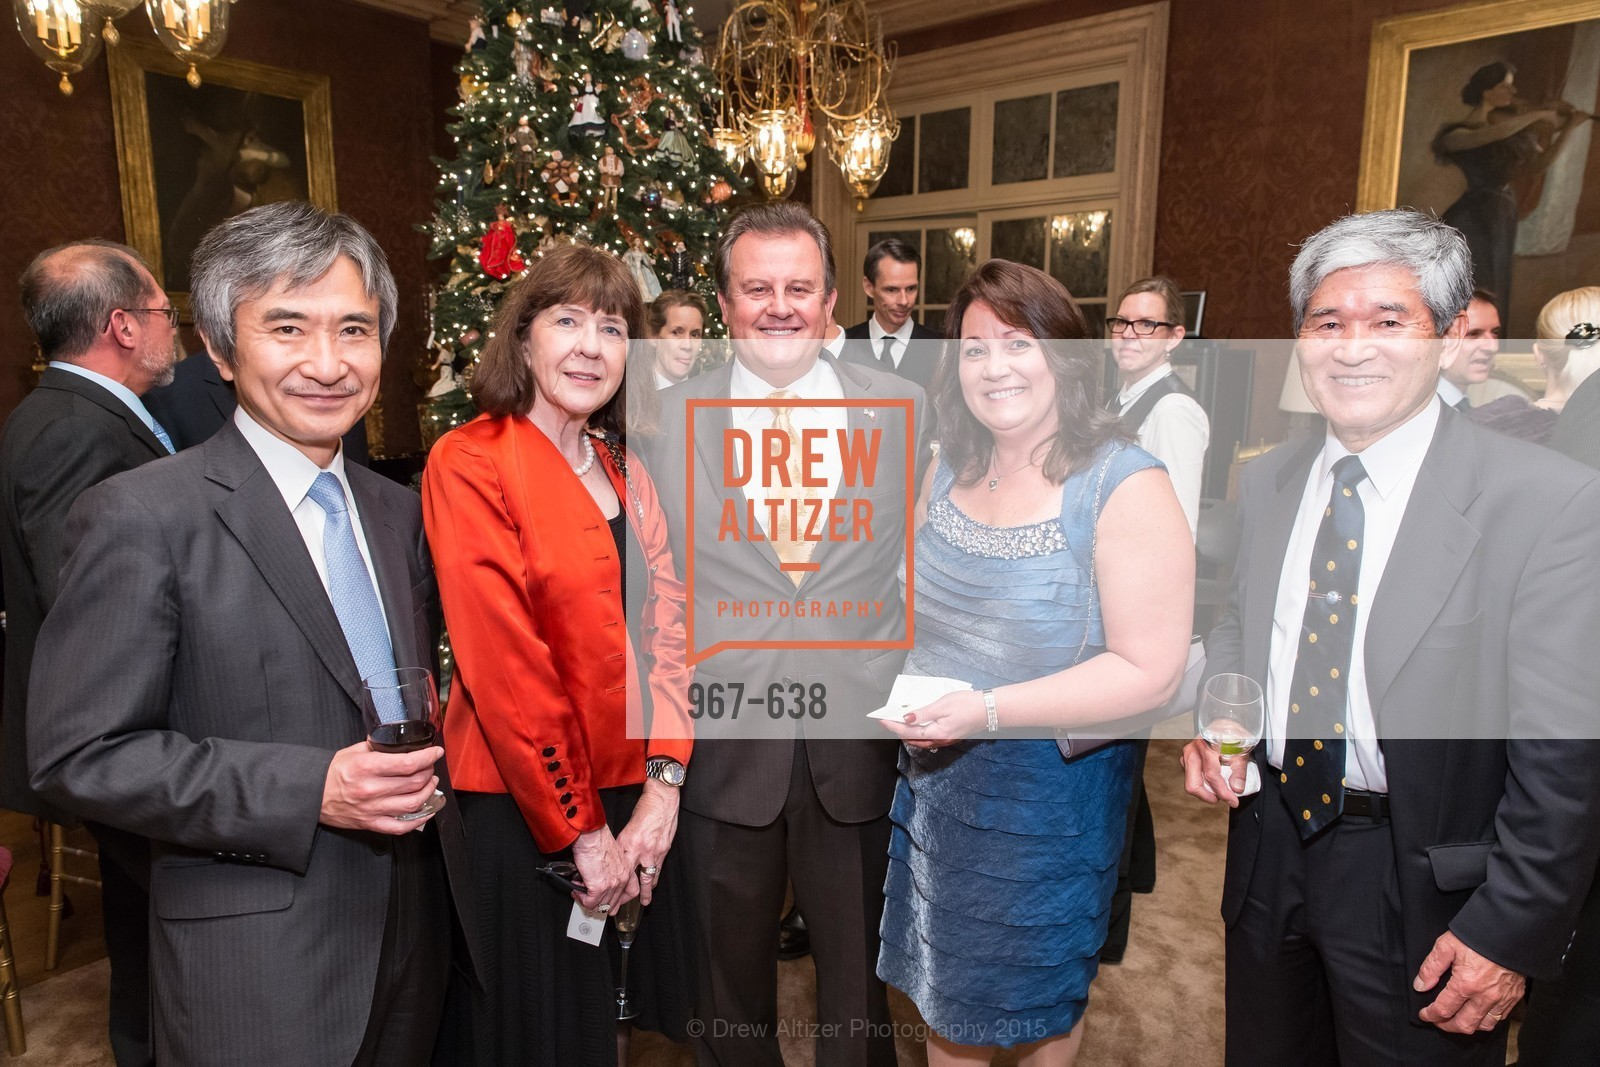 Jun Yamada, Kathleen Kimura, Louis Bella, Lillian Bella, Kozo Kimura, San Francisco Mayor's Office of Protocol Christmas Party, Private Residence, December 9th, 2015,Drew Altizer, Drew Altizer Photography, full-service event agency, private events, San Francisco photographer, photographer California